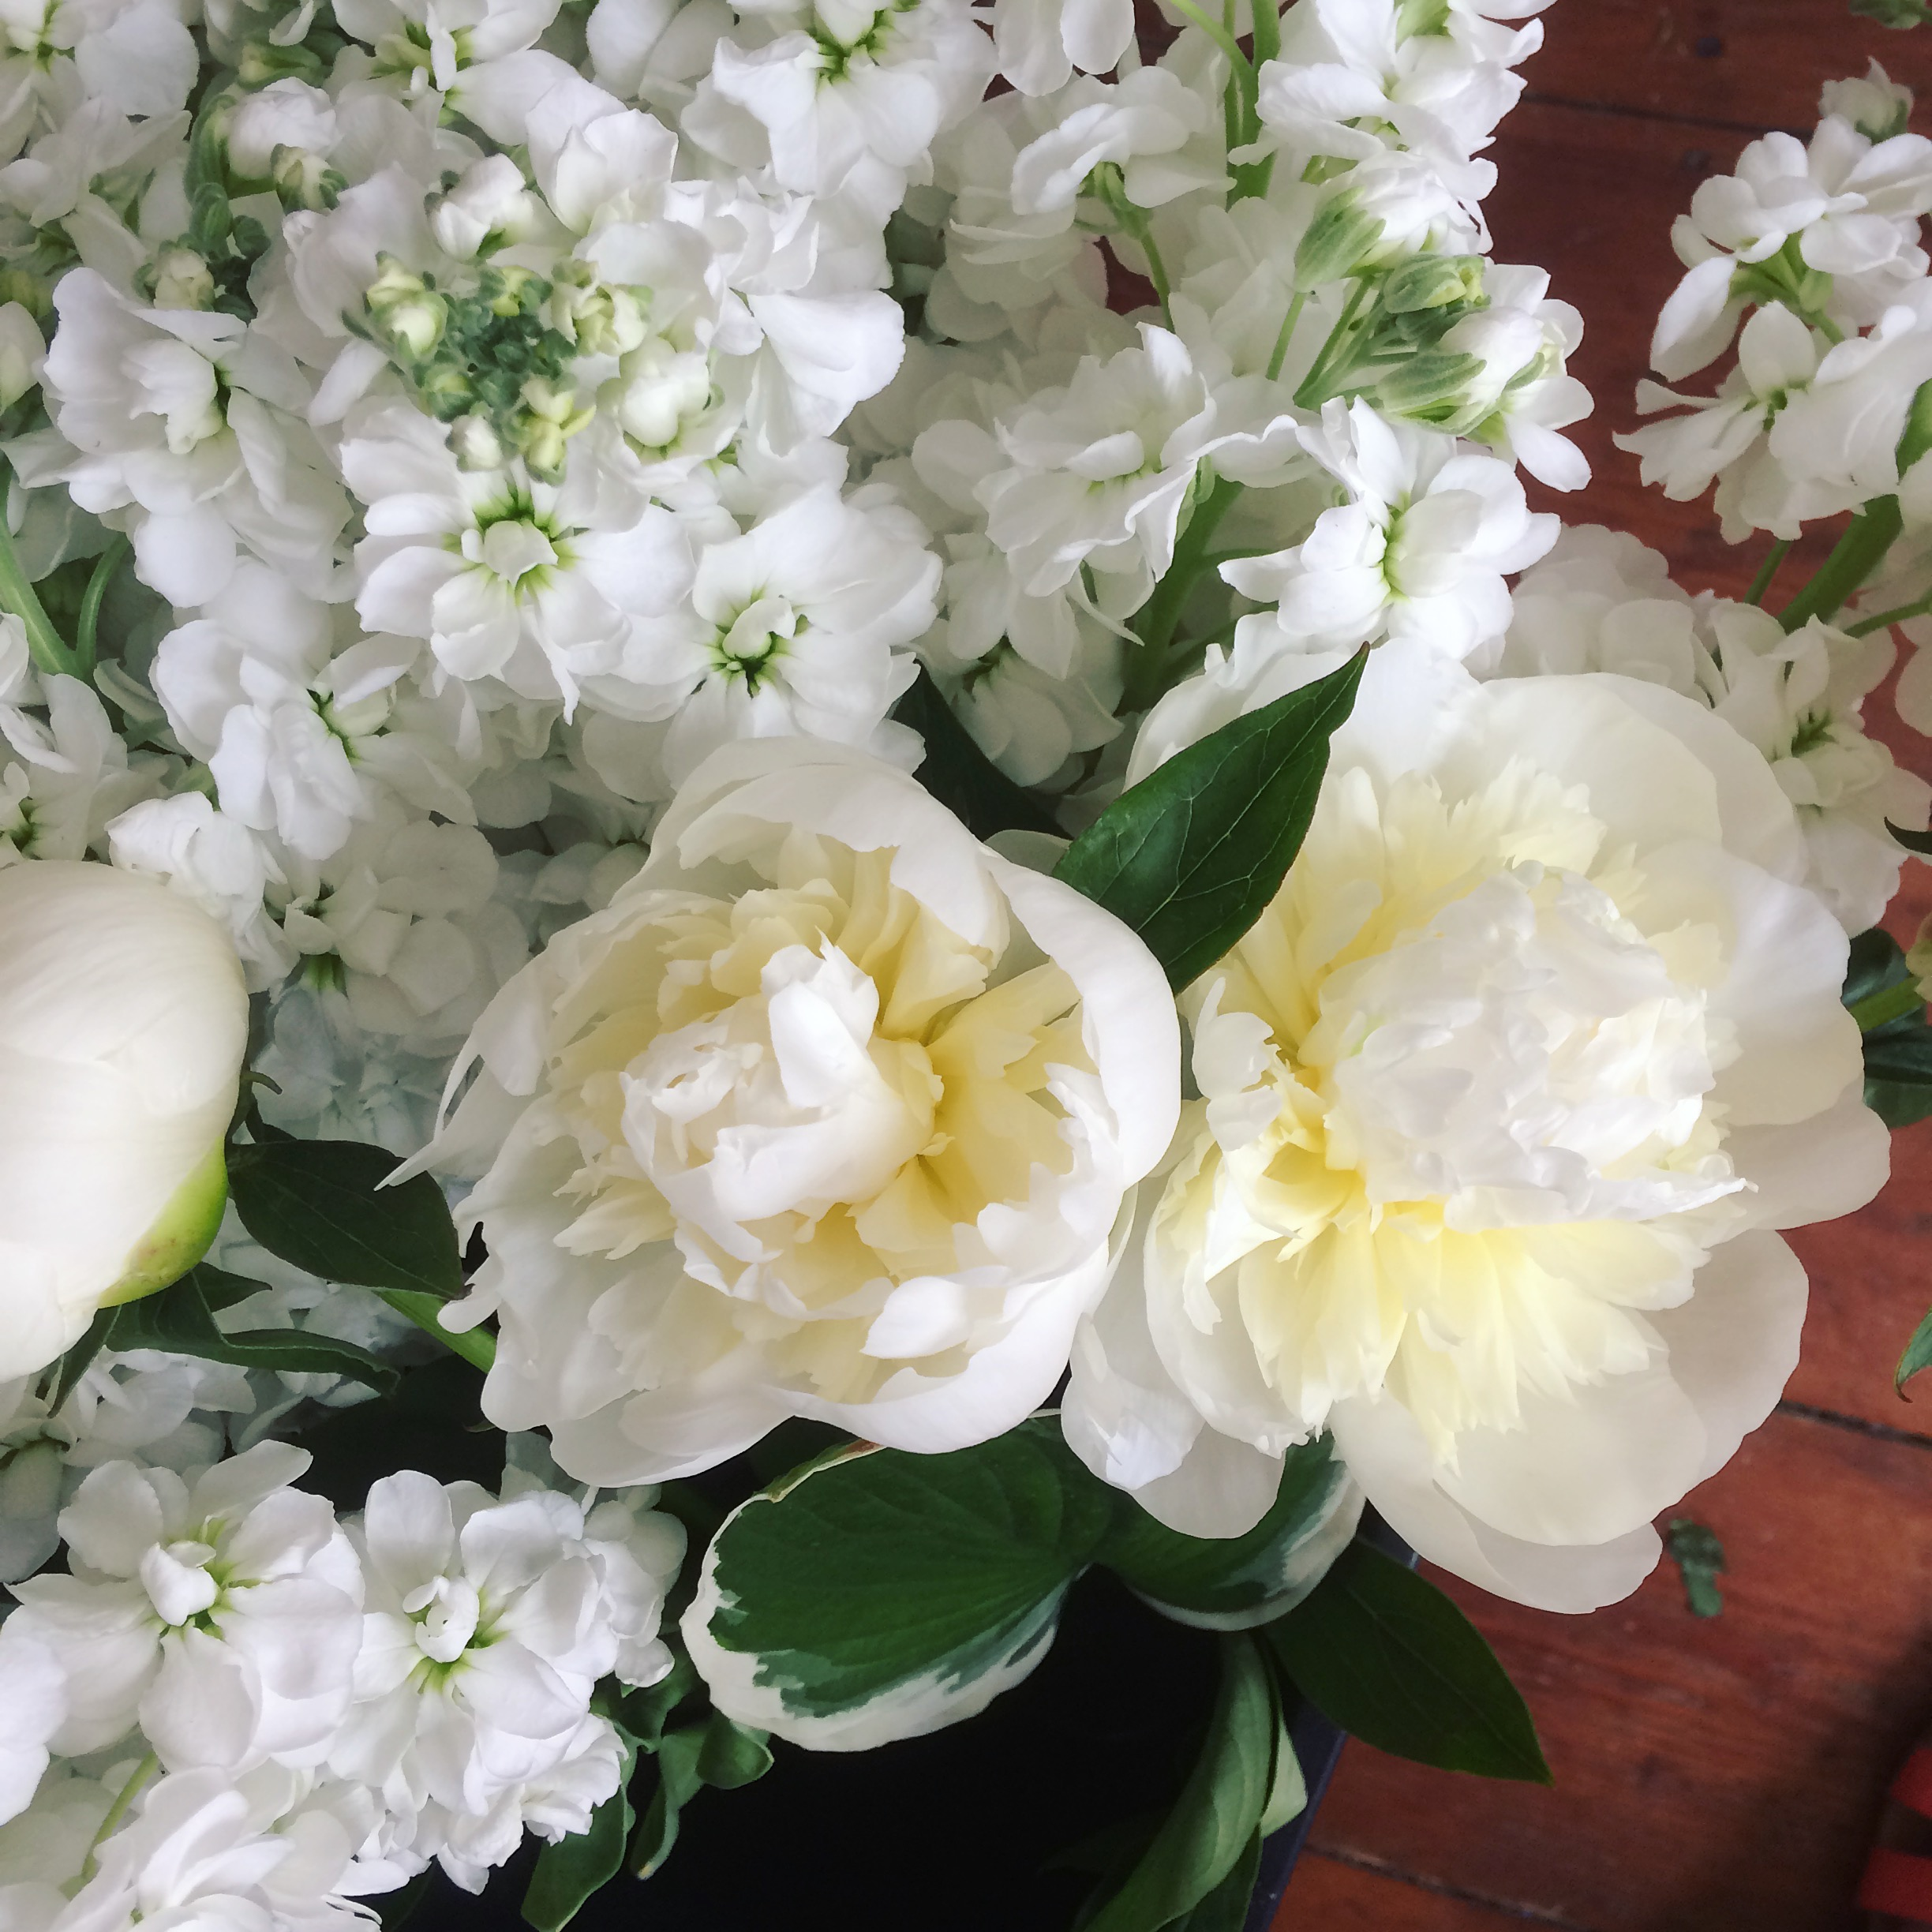 white peonies and stocks, perfect for wedding flowers in june